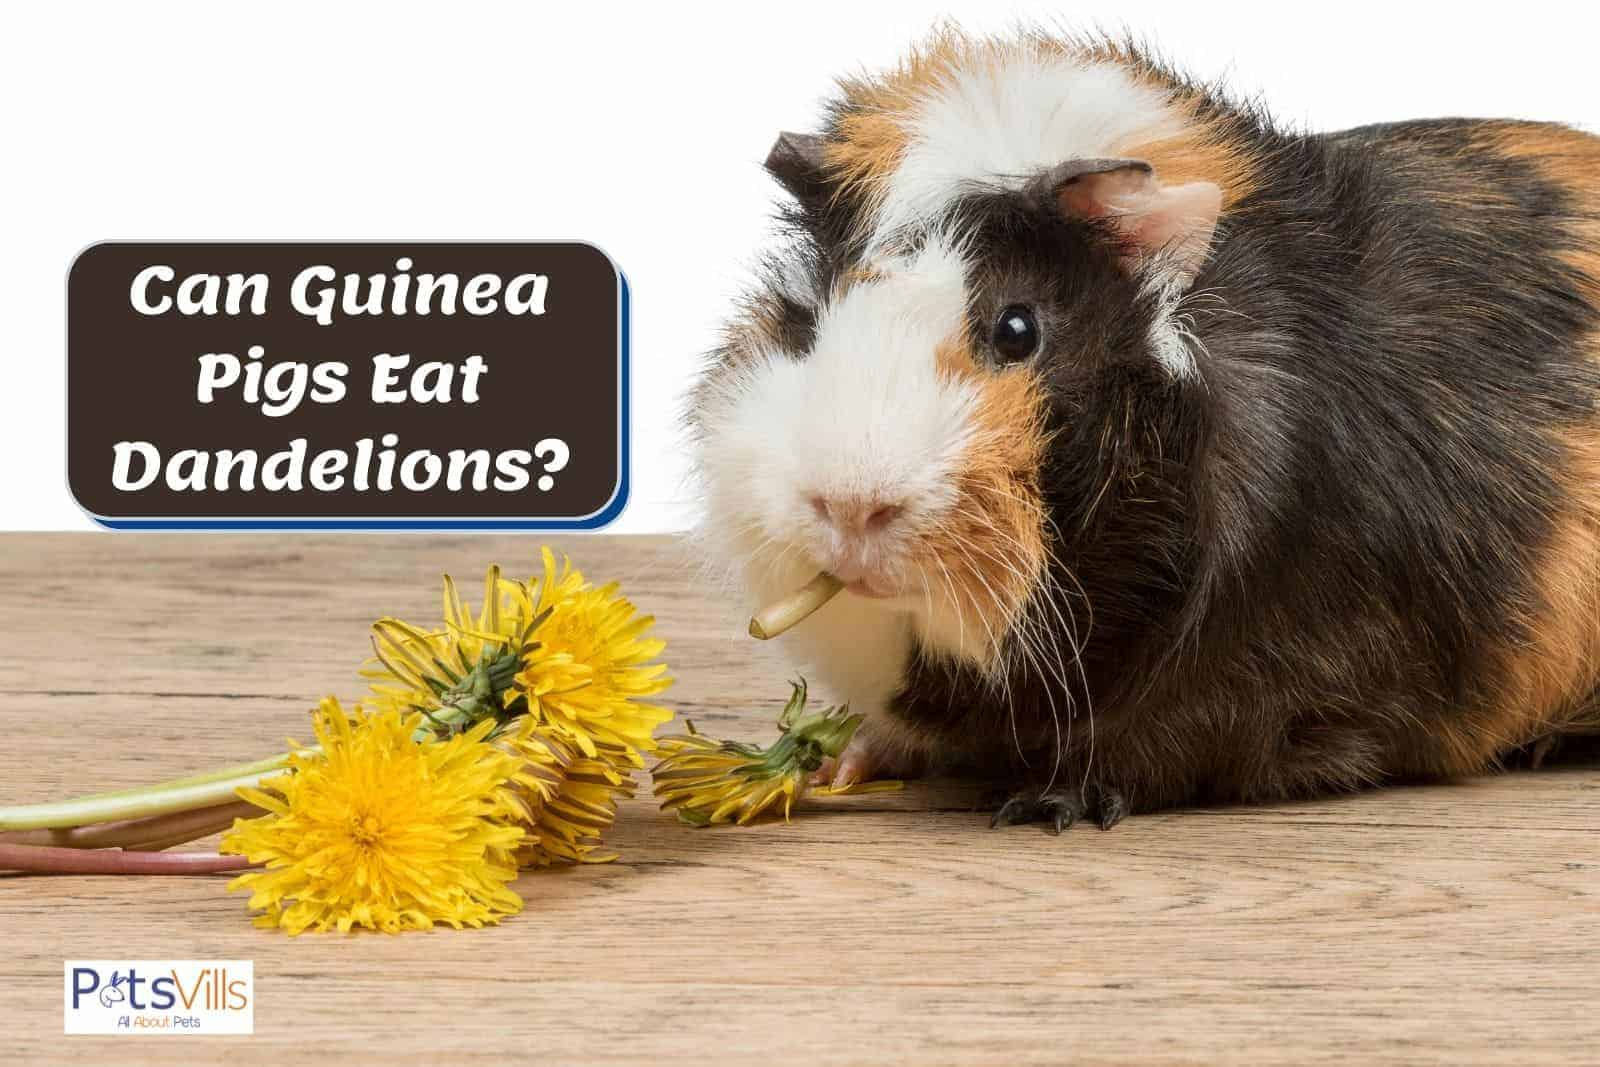 guinea pig chewing dandelion but can guinea pigs eat dandelions?